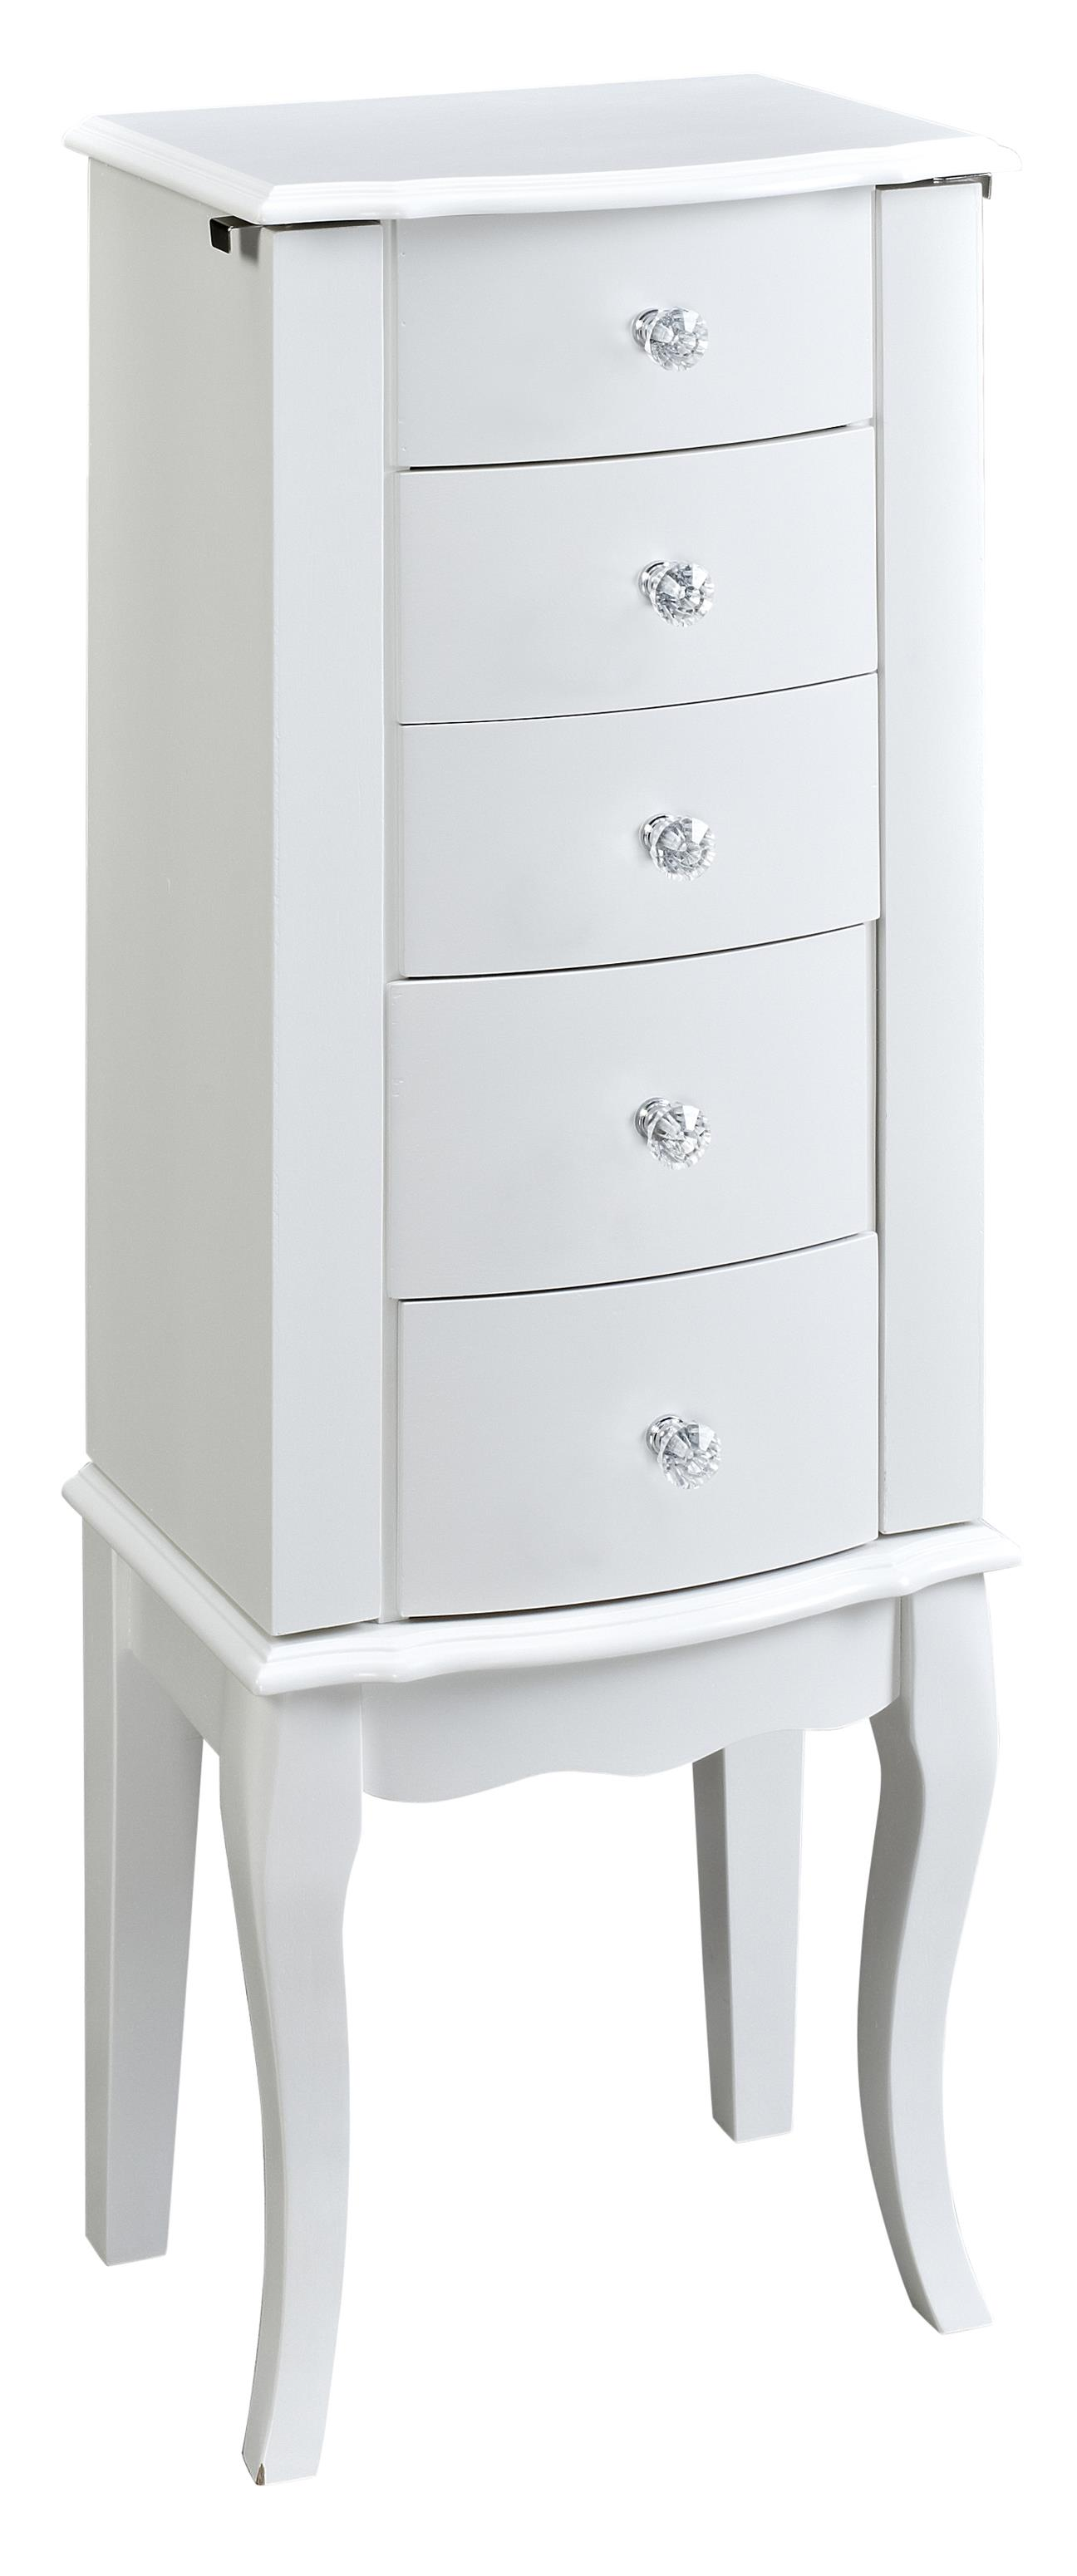 Powell Jewelry Armoire White Jewelry Armoire - Item Number: 929-521